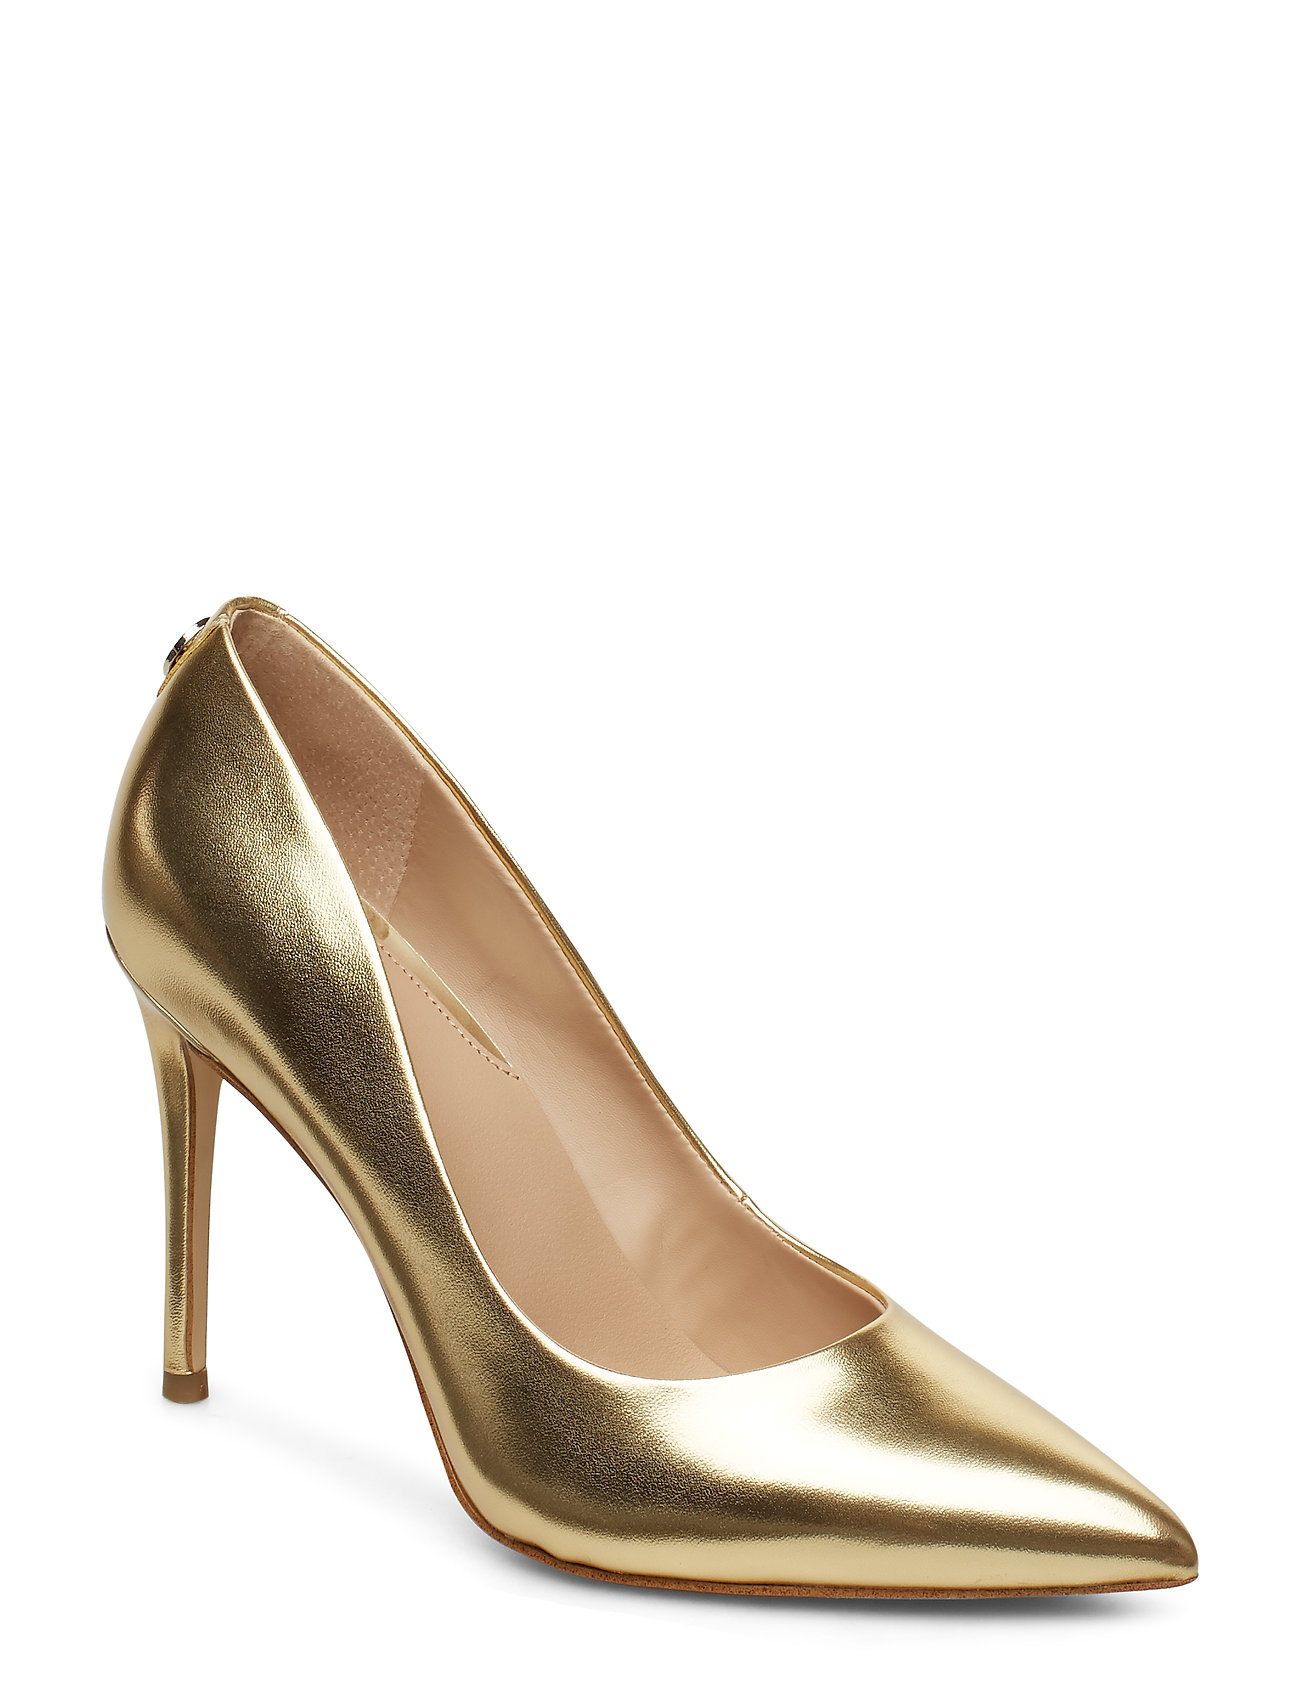 GUESS BELAN4/DECOLLETE (PUMP)/LEATHE - GOLD